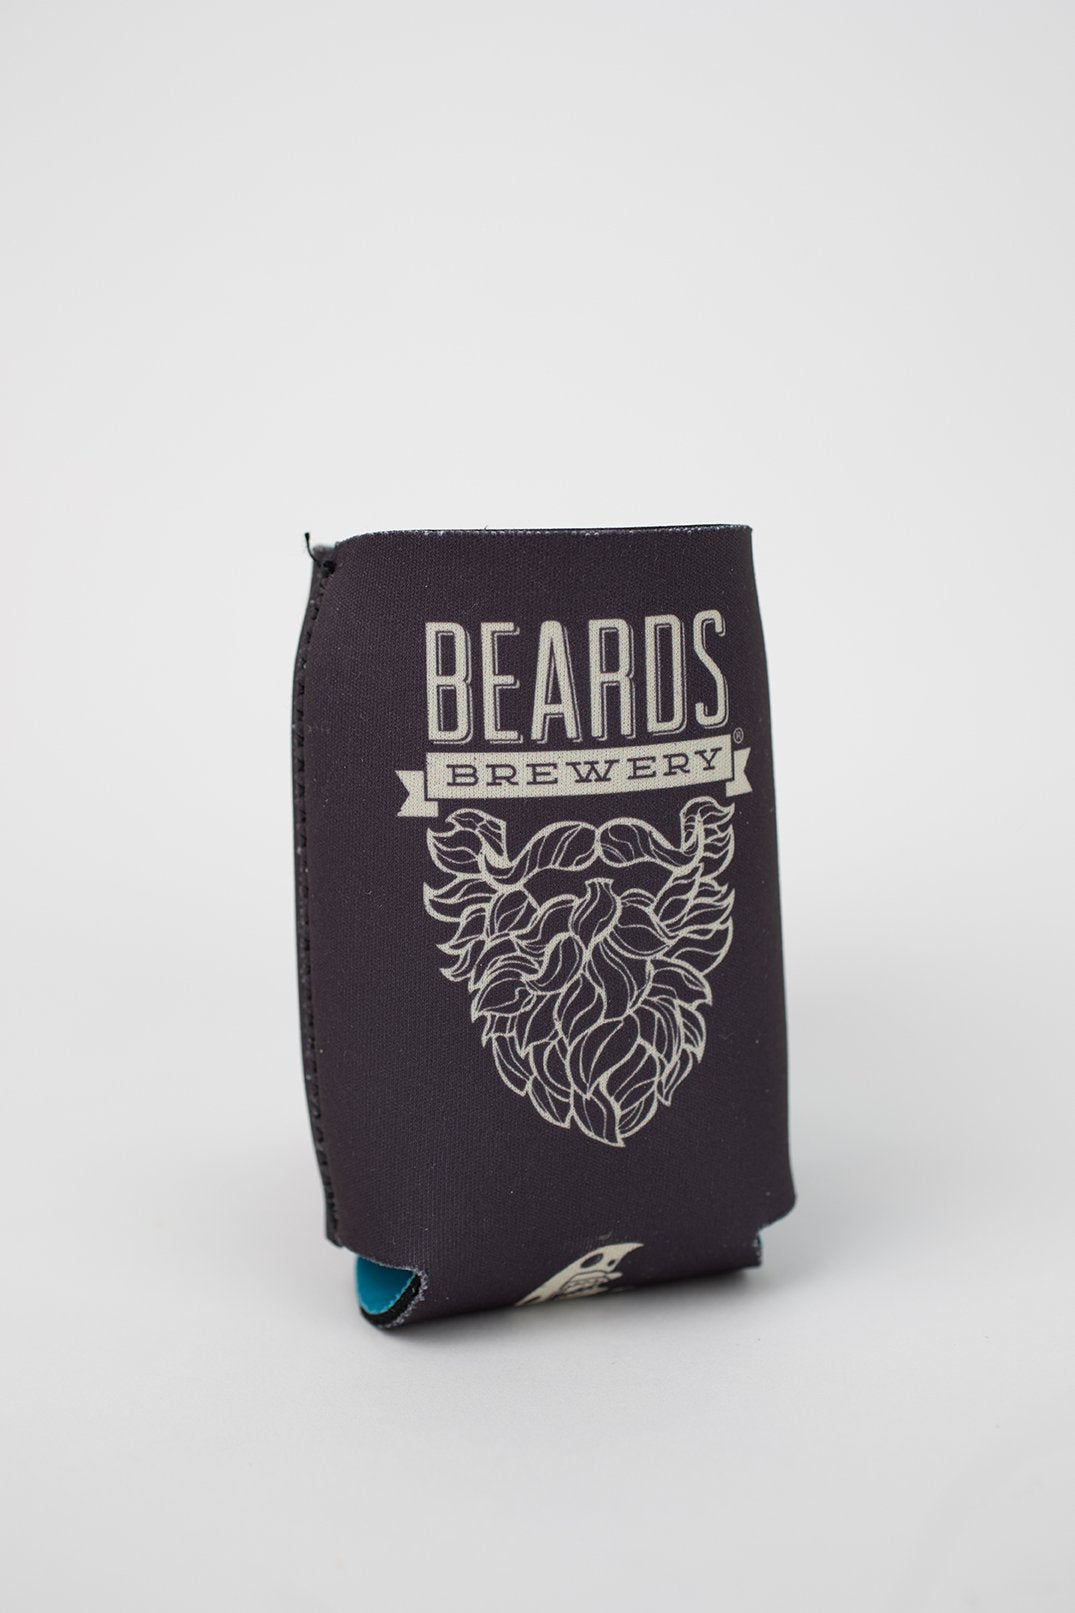 Beards Brewery koozie